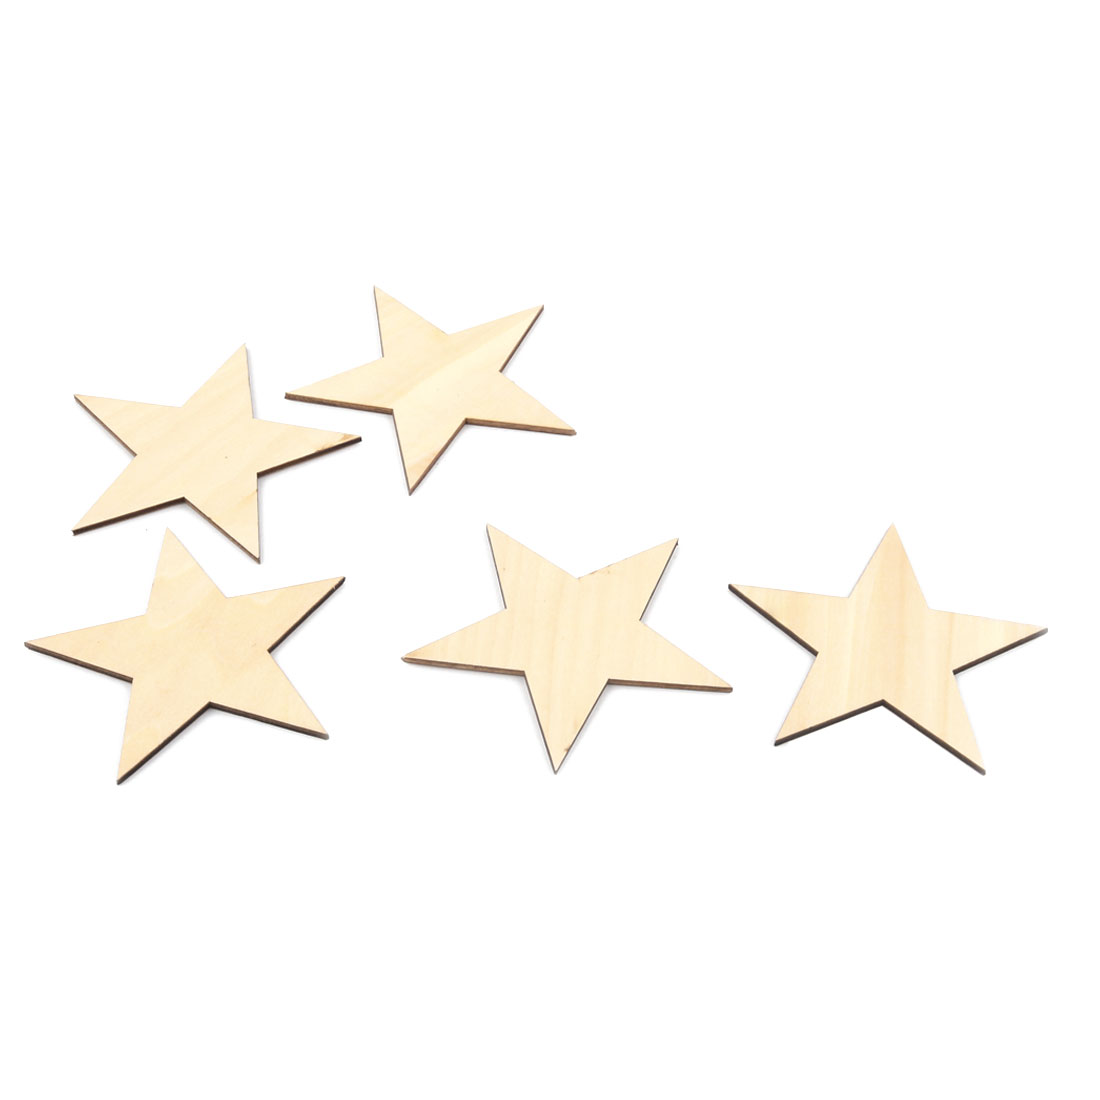 Wooden Star Shaped DIY Craft Christmas Tree Decor Accessories Ornaments Beige 100 x 100mm 5 Pcs